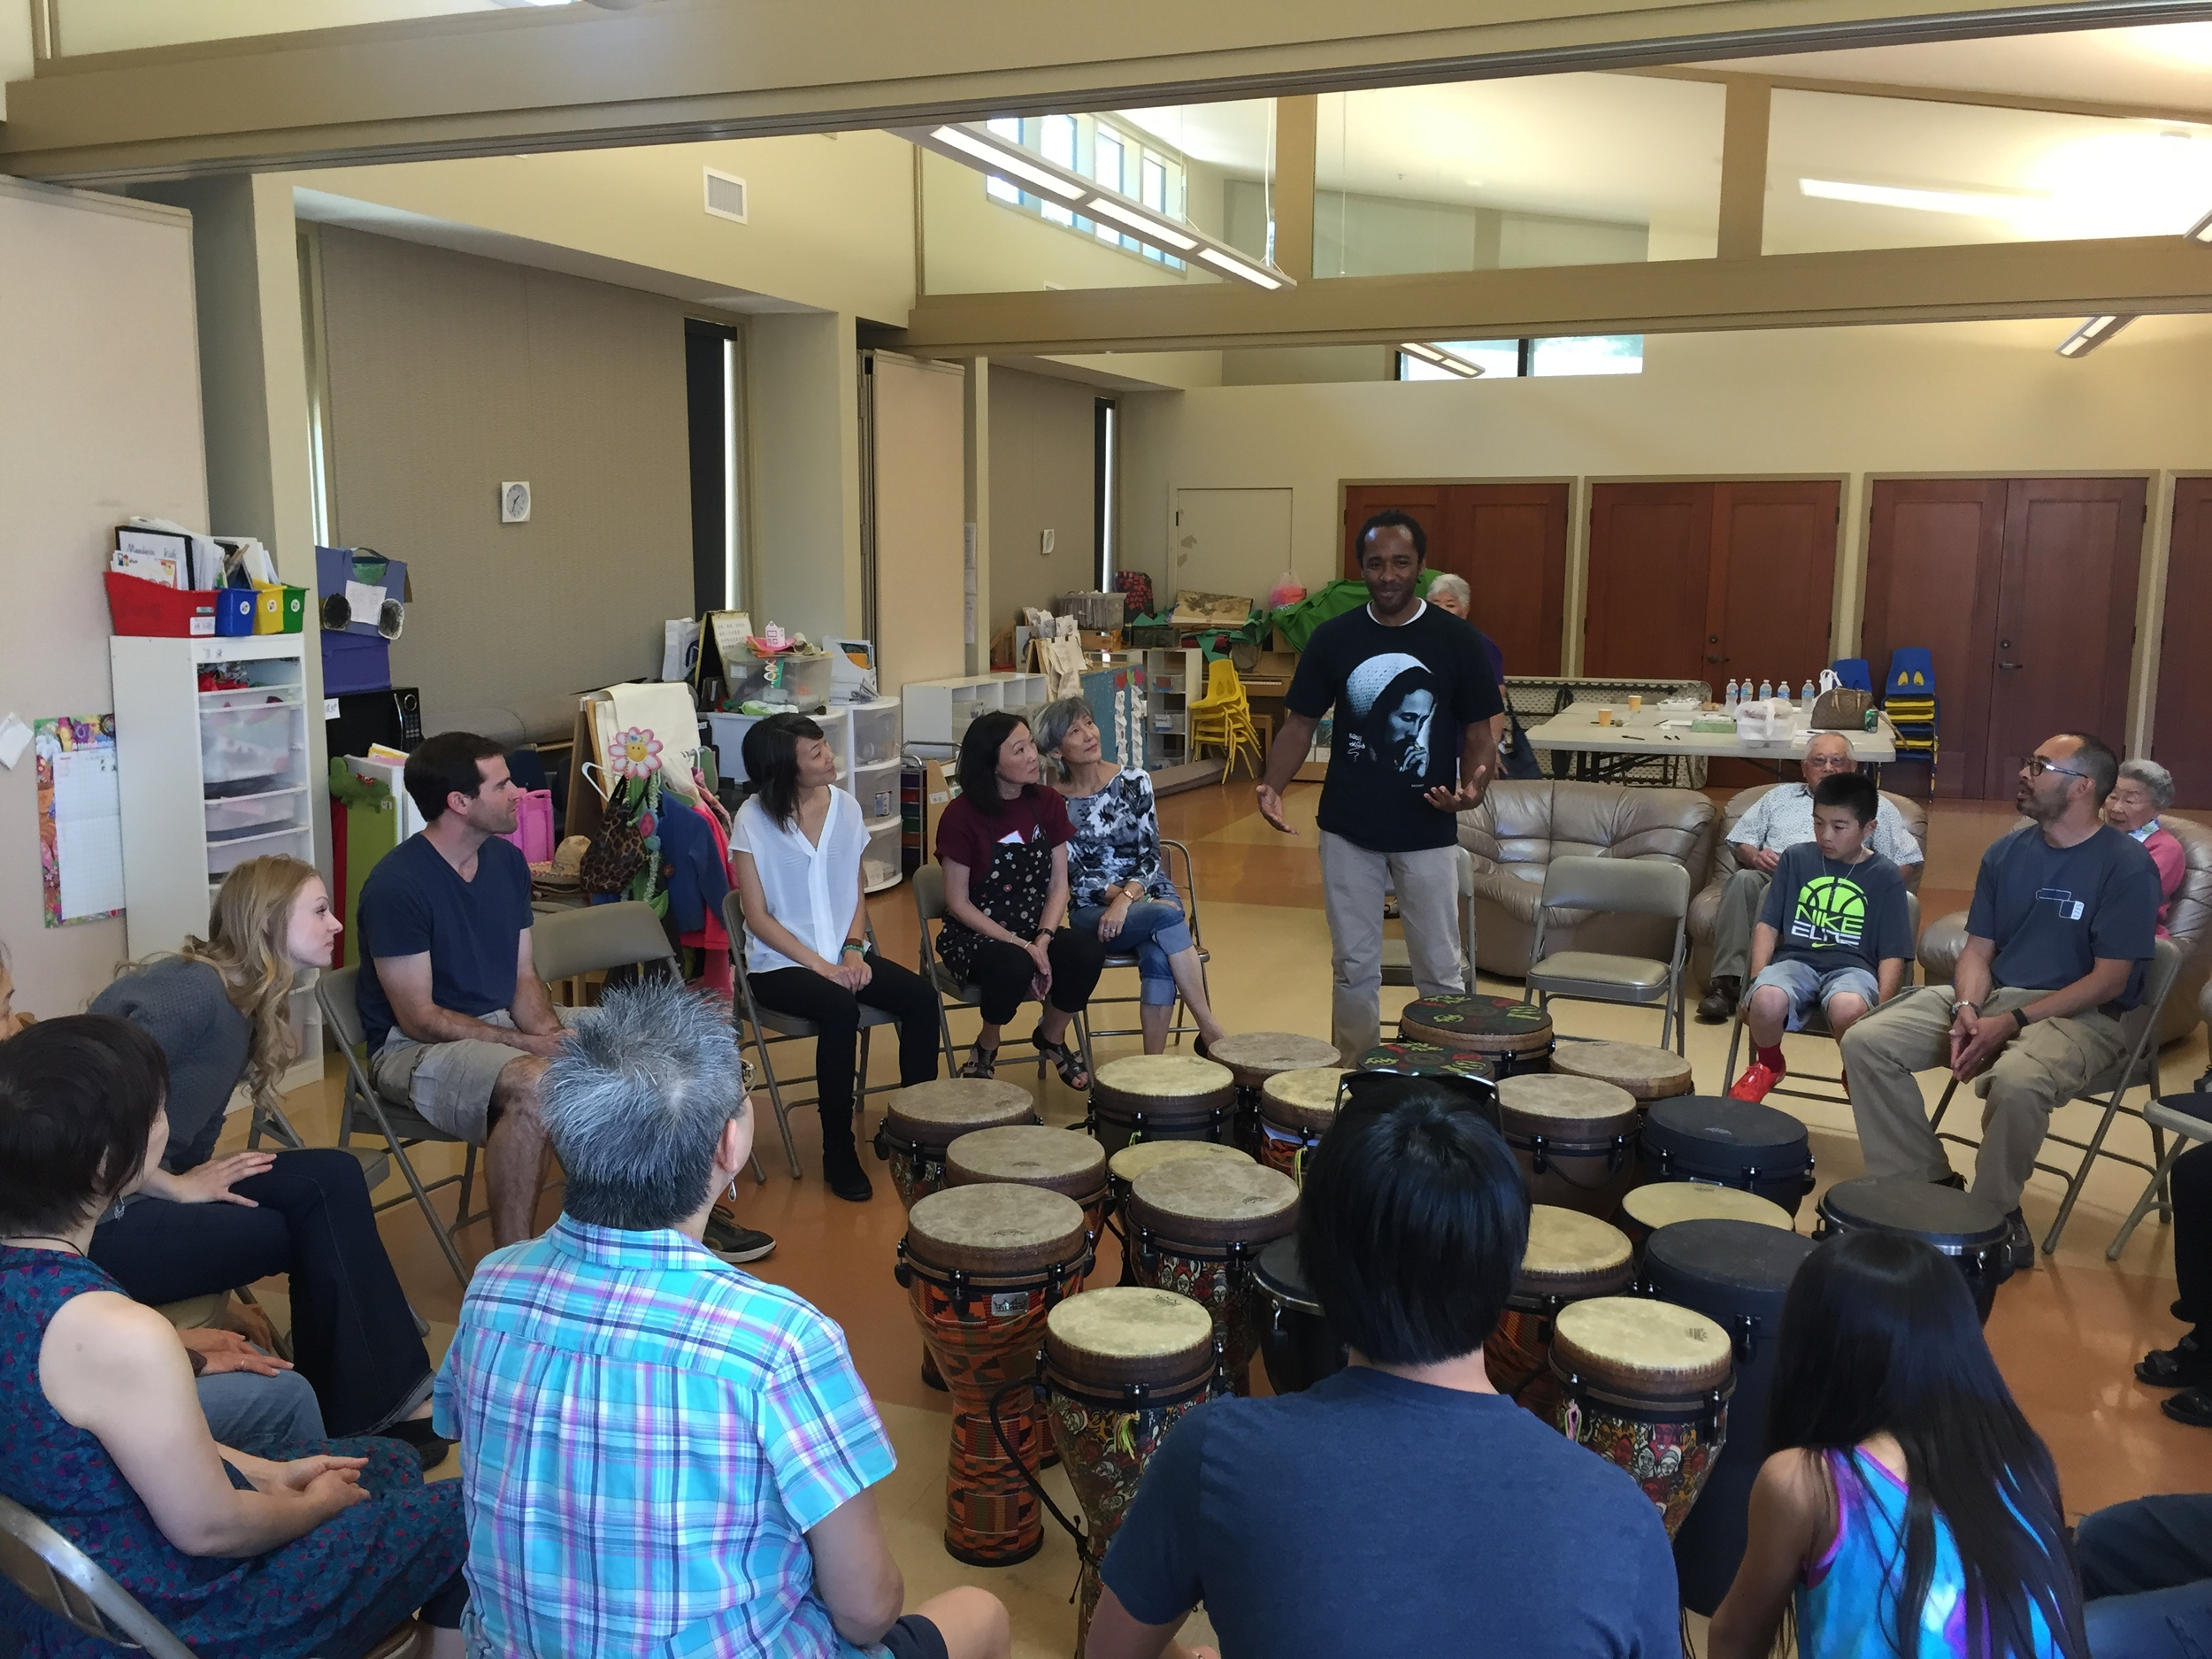 Sekayi Edwards (Creative Expression Director, standing center) begins the intergenerational group drumming circle